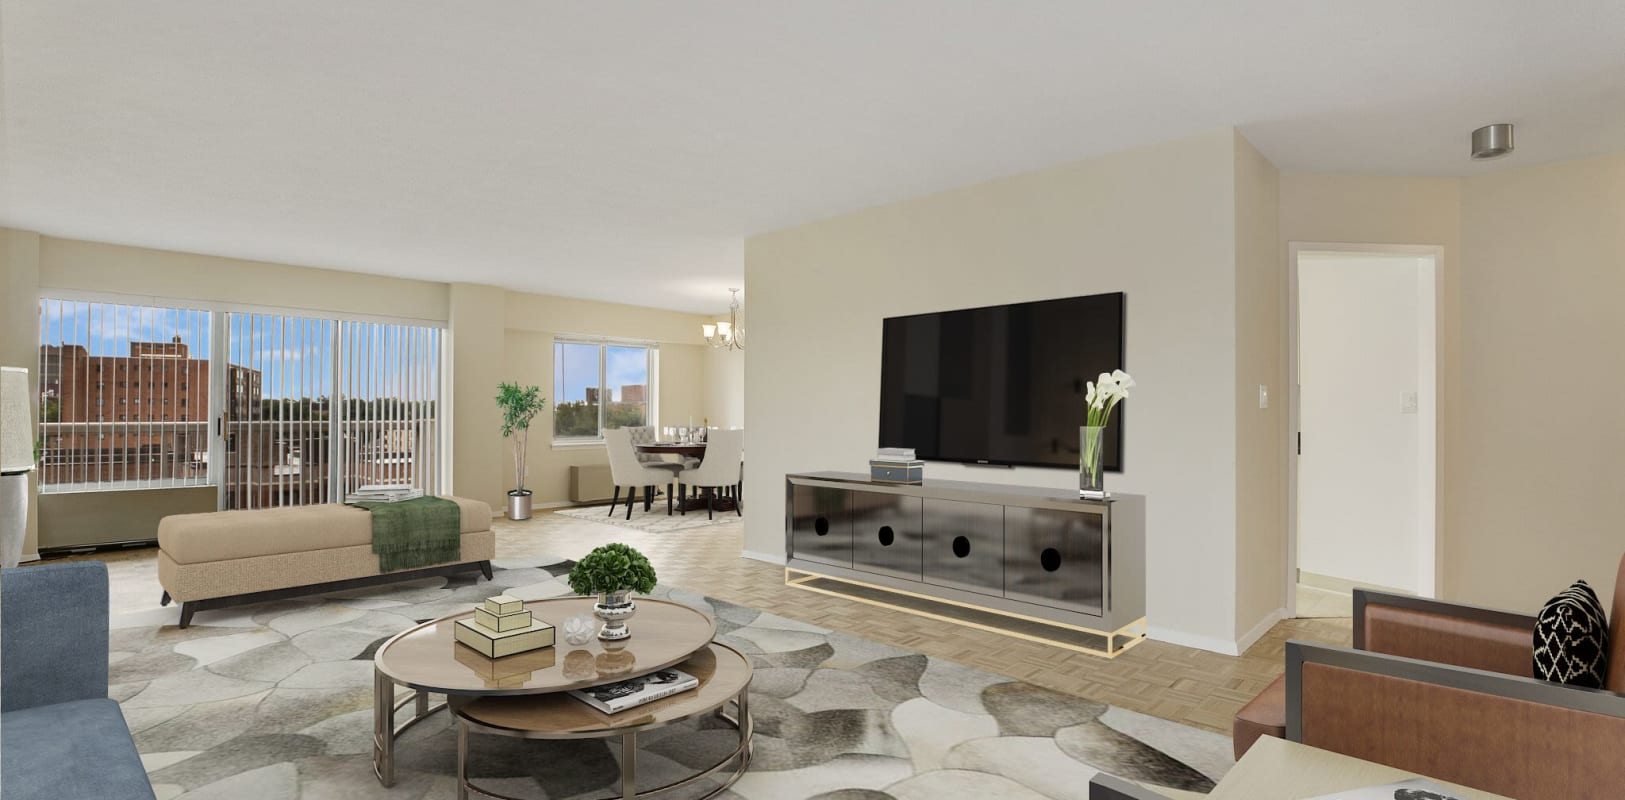 Well decorated living room at 140 Prospect in Hackensack, New Jersey